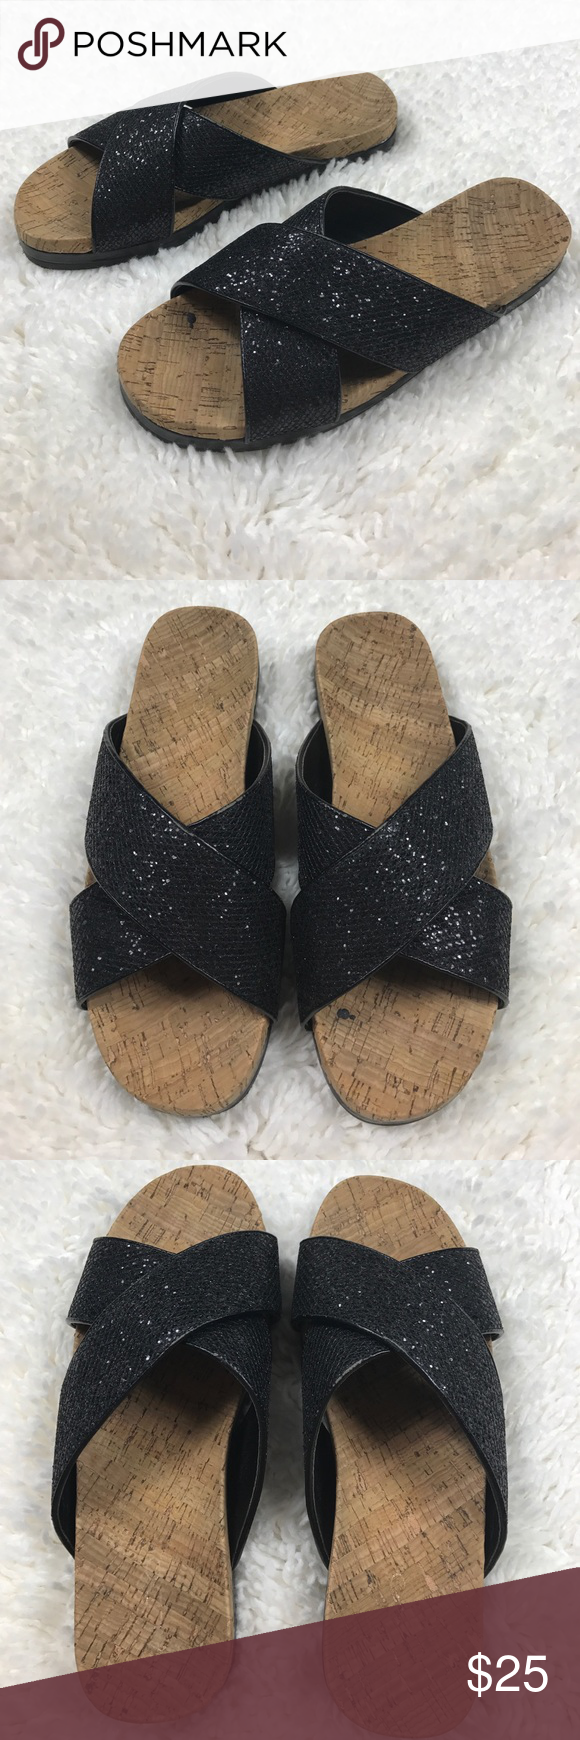 b51482ab5b2 Aldo Glitter Cork Footbed Slide Sandals Size 9 Aldo Glitter Cork Footbed Slide  Sandals Black Size 9 A few scuffs on the trim - see photos Aldo Shoes  Sandals